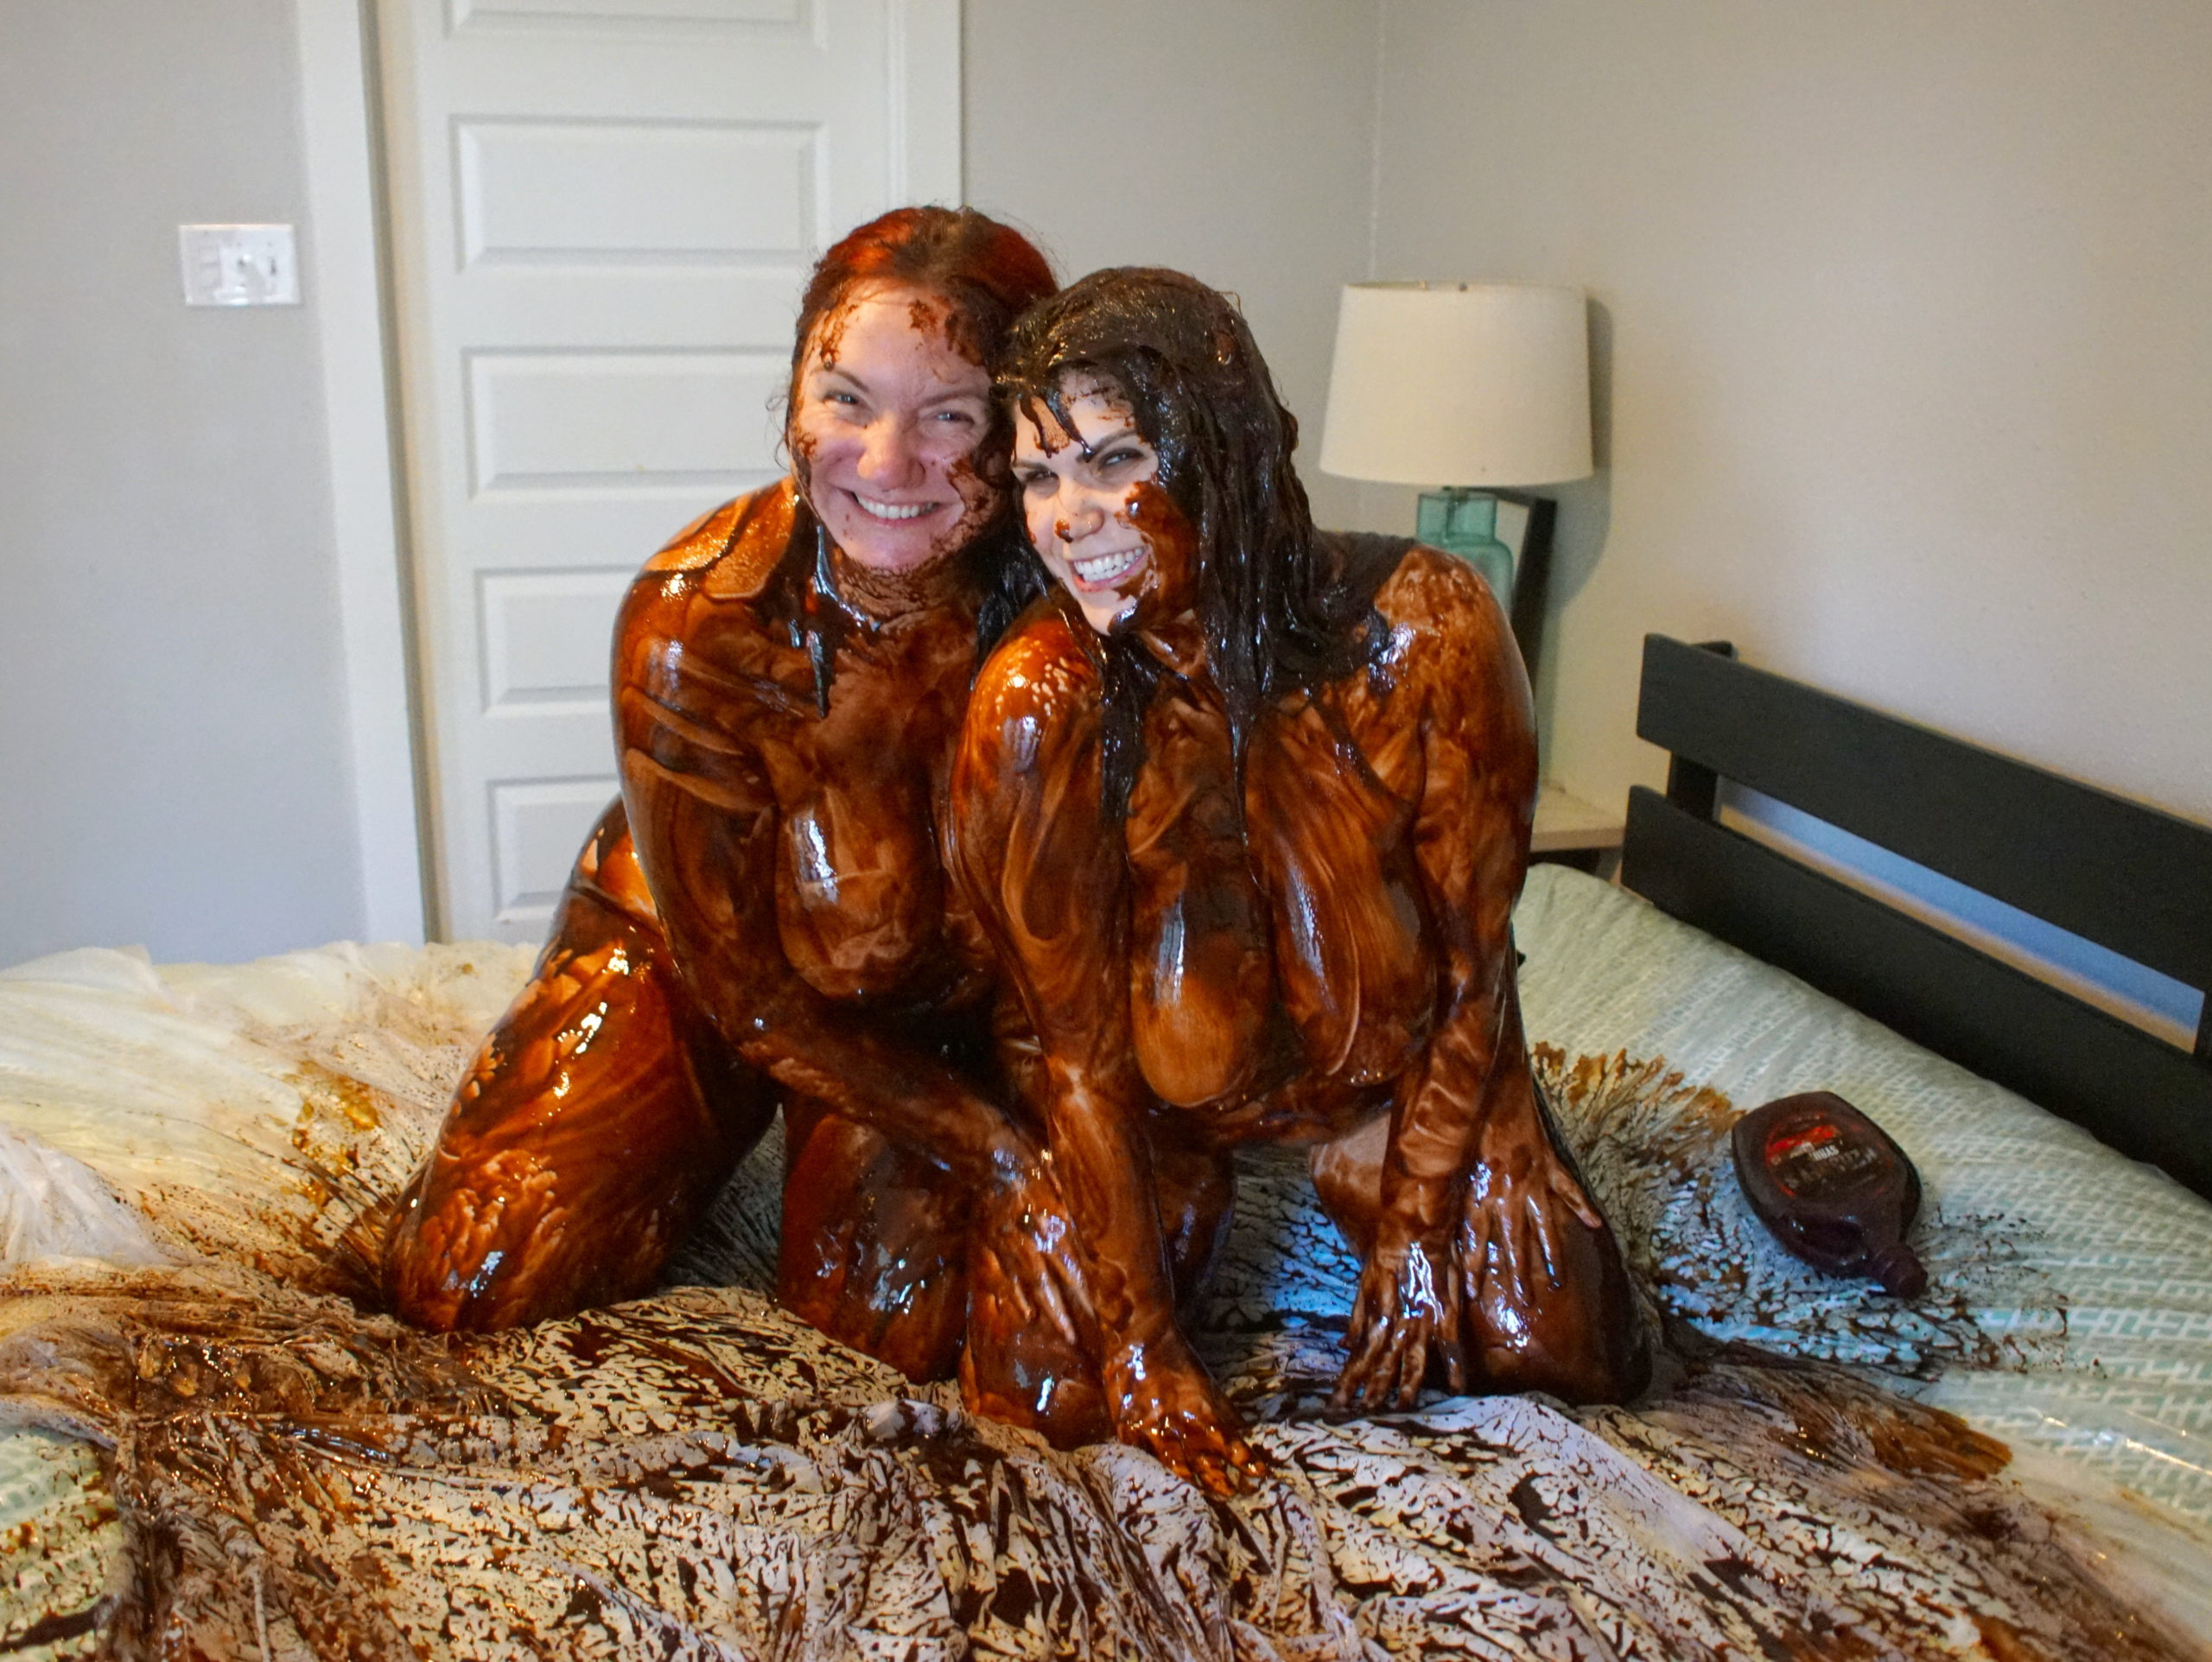 It's hard not to laugh, when... chocolate!